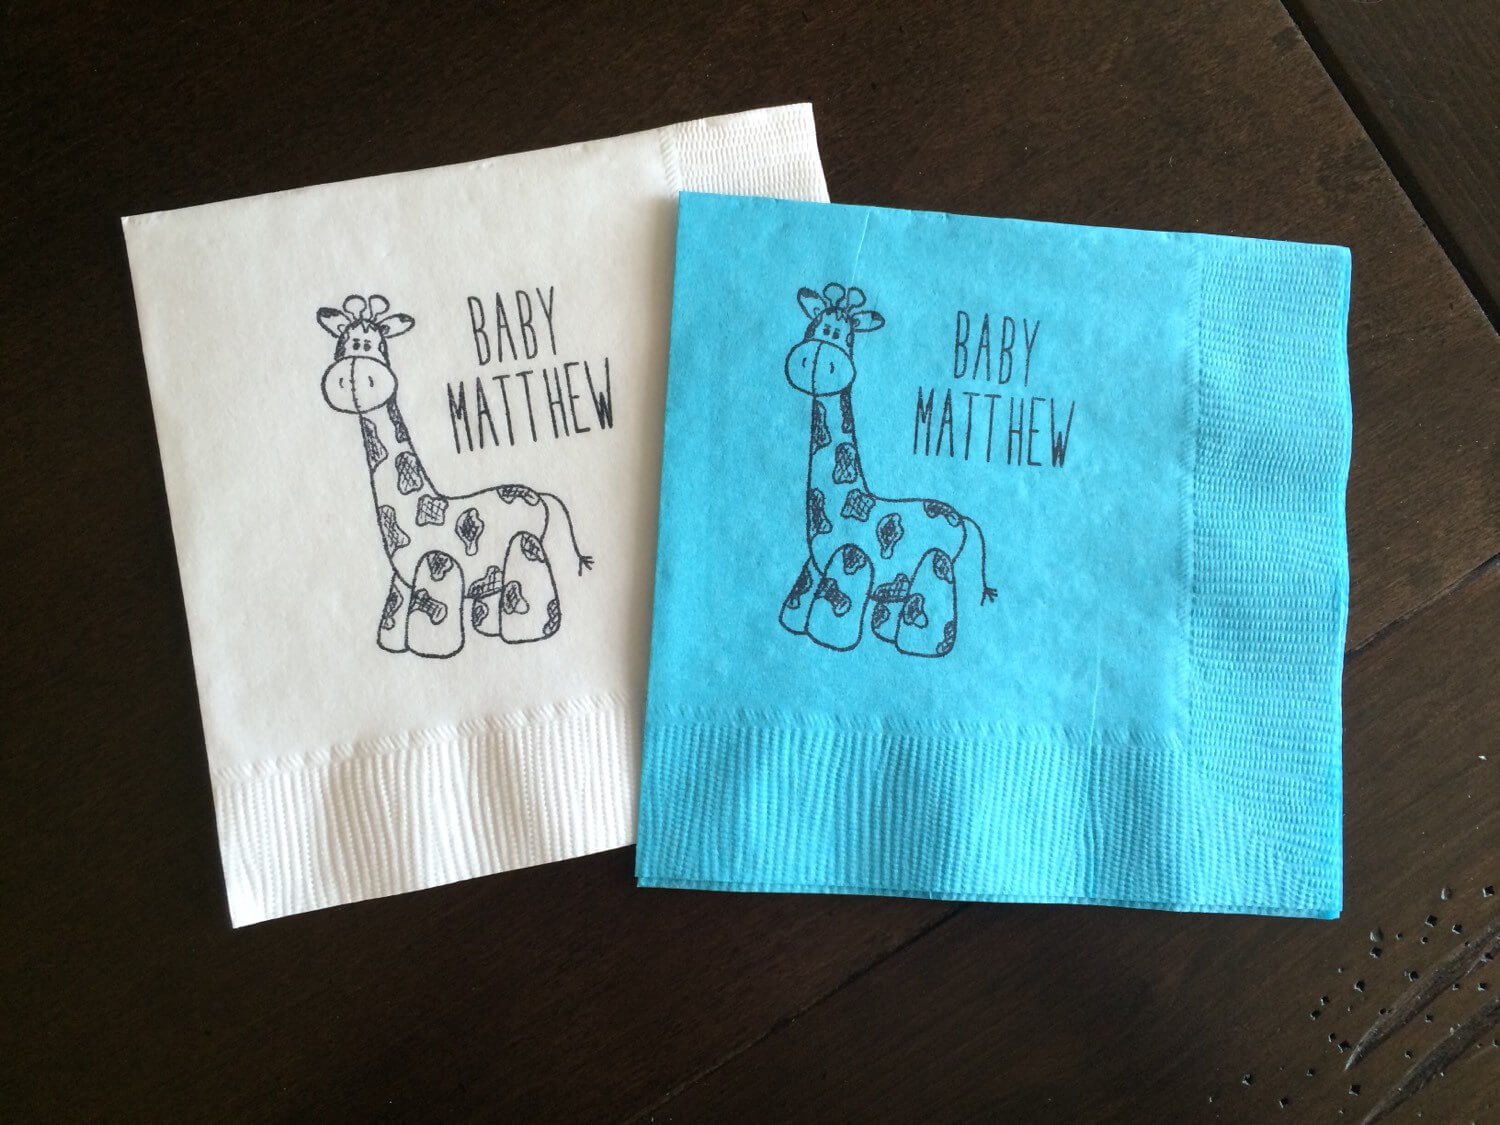 Personalized Giraffe Napkins - Baby Shower Napkins, Giraffe Baby Shower